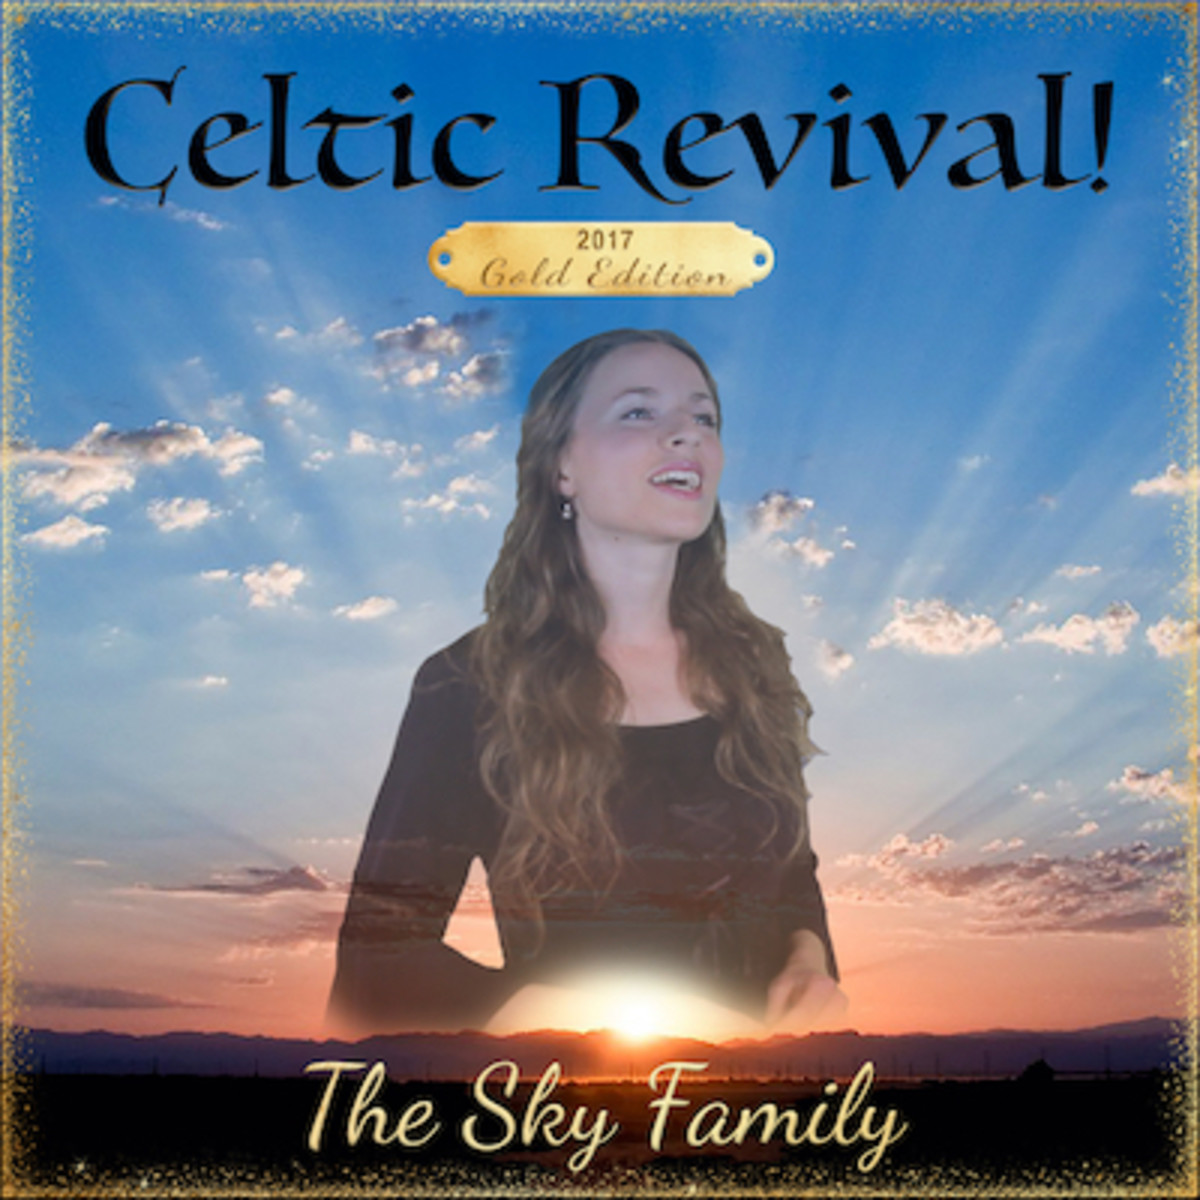 The Sky Family's Celtic Revival! 2017 Gold Edition